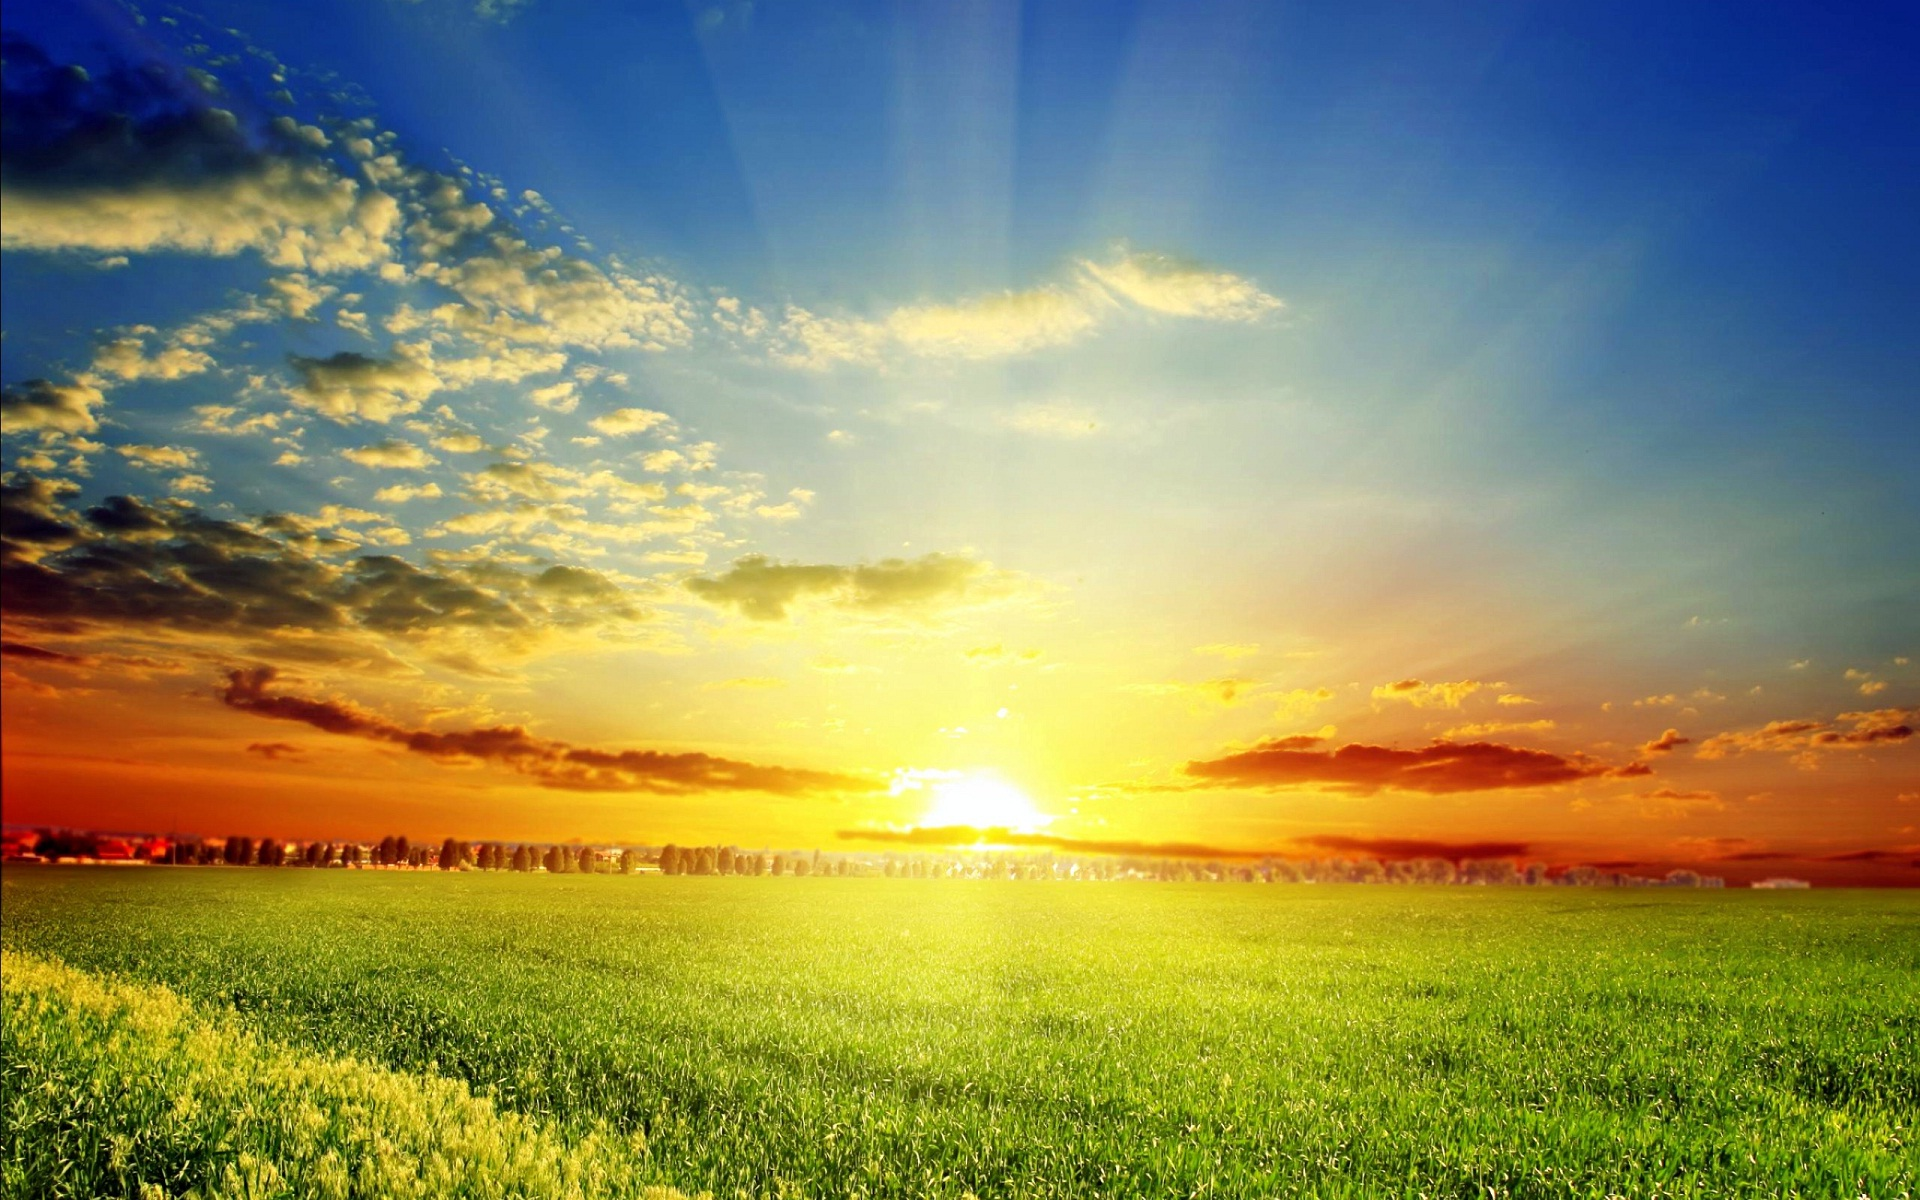 Collection of Sunshine Wallpaper on HDWallpapers